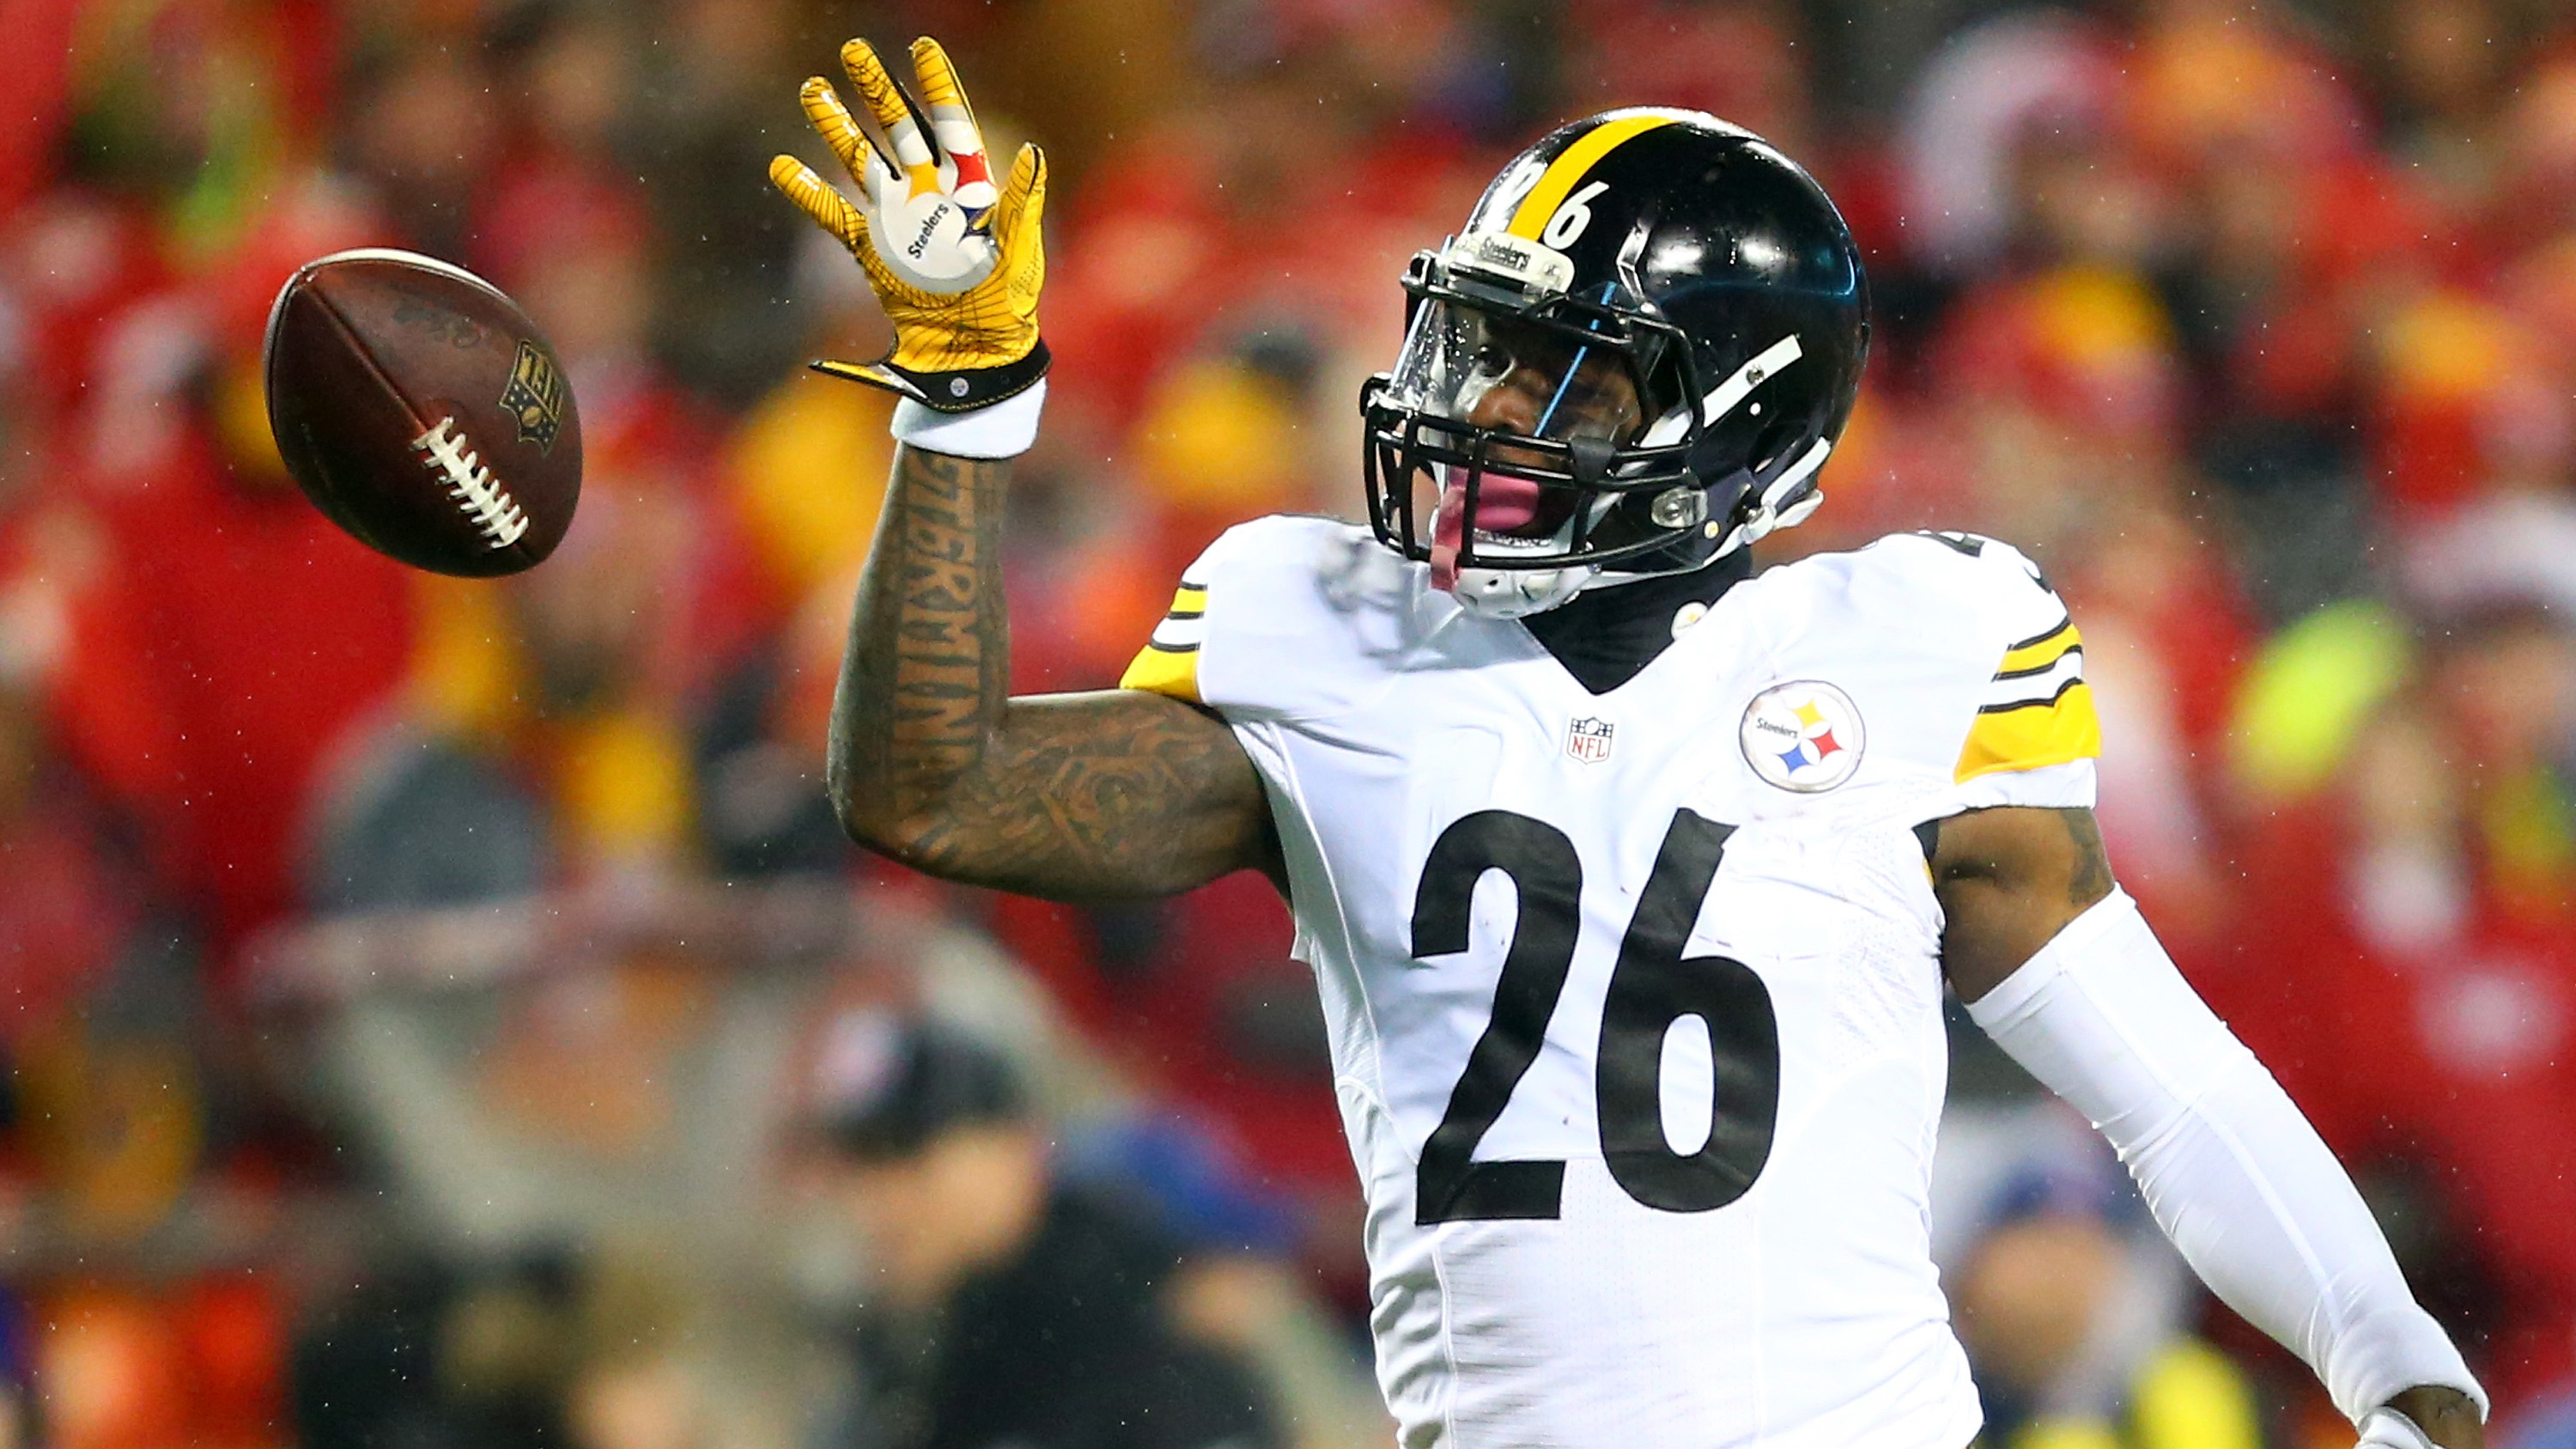 Only Le'Veon Bell can stop Le'Veon Bell  for cheap